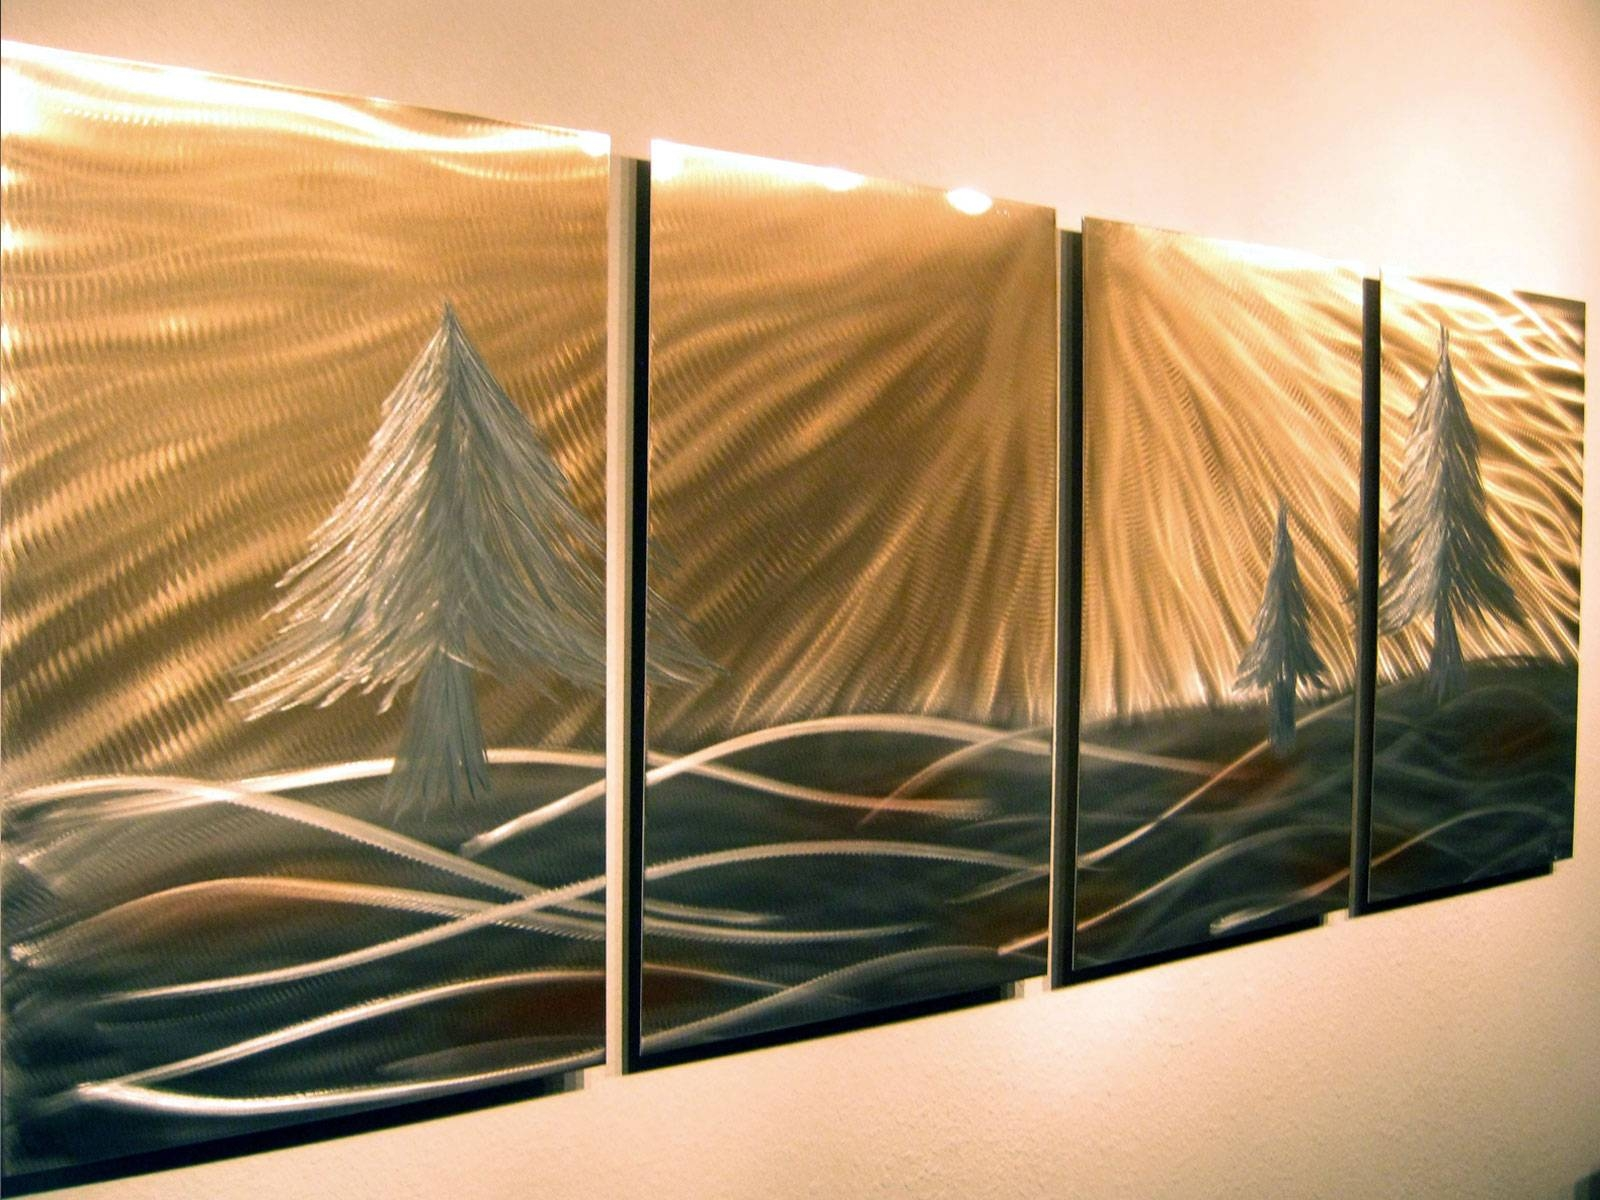 3 Pine Trees – Abstract Metal Wall Art Contemporary Modern Decor With Regard To 2018 Modern Abstract Metal Wall Art (View 1 of 20)